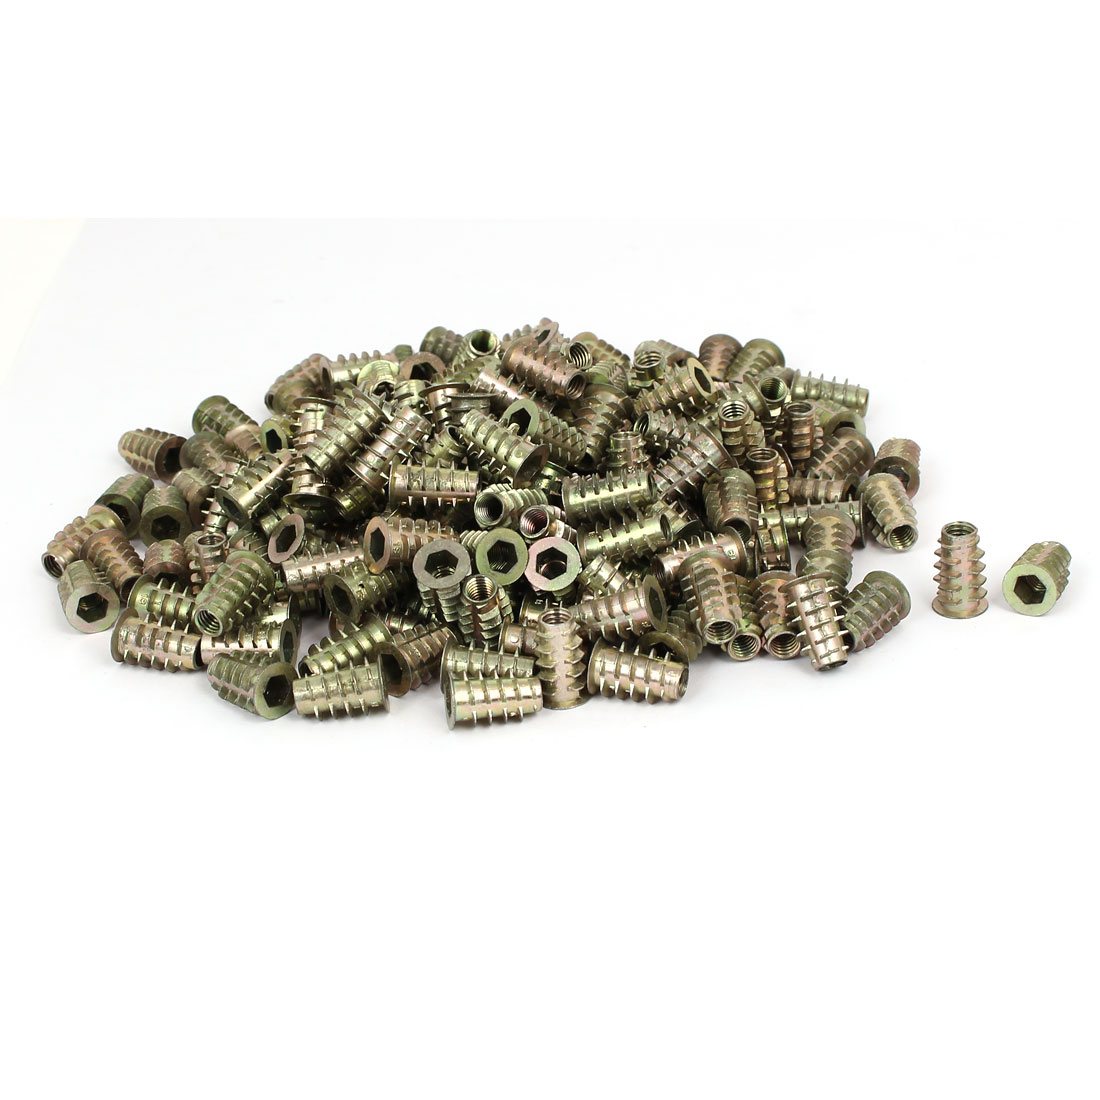 M6 x 18mm Hex Socket Head Insert Screws E-Nuts Furniture Fittings 200pcs